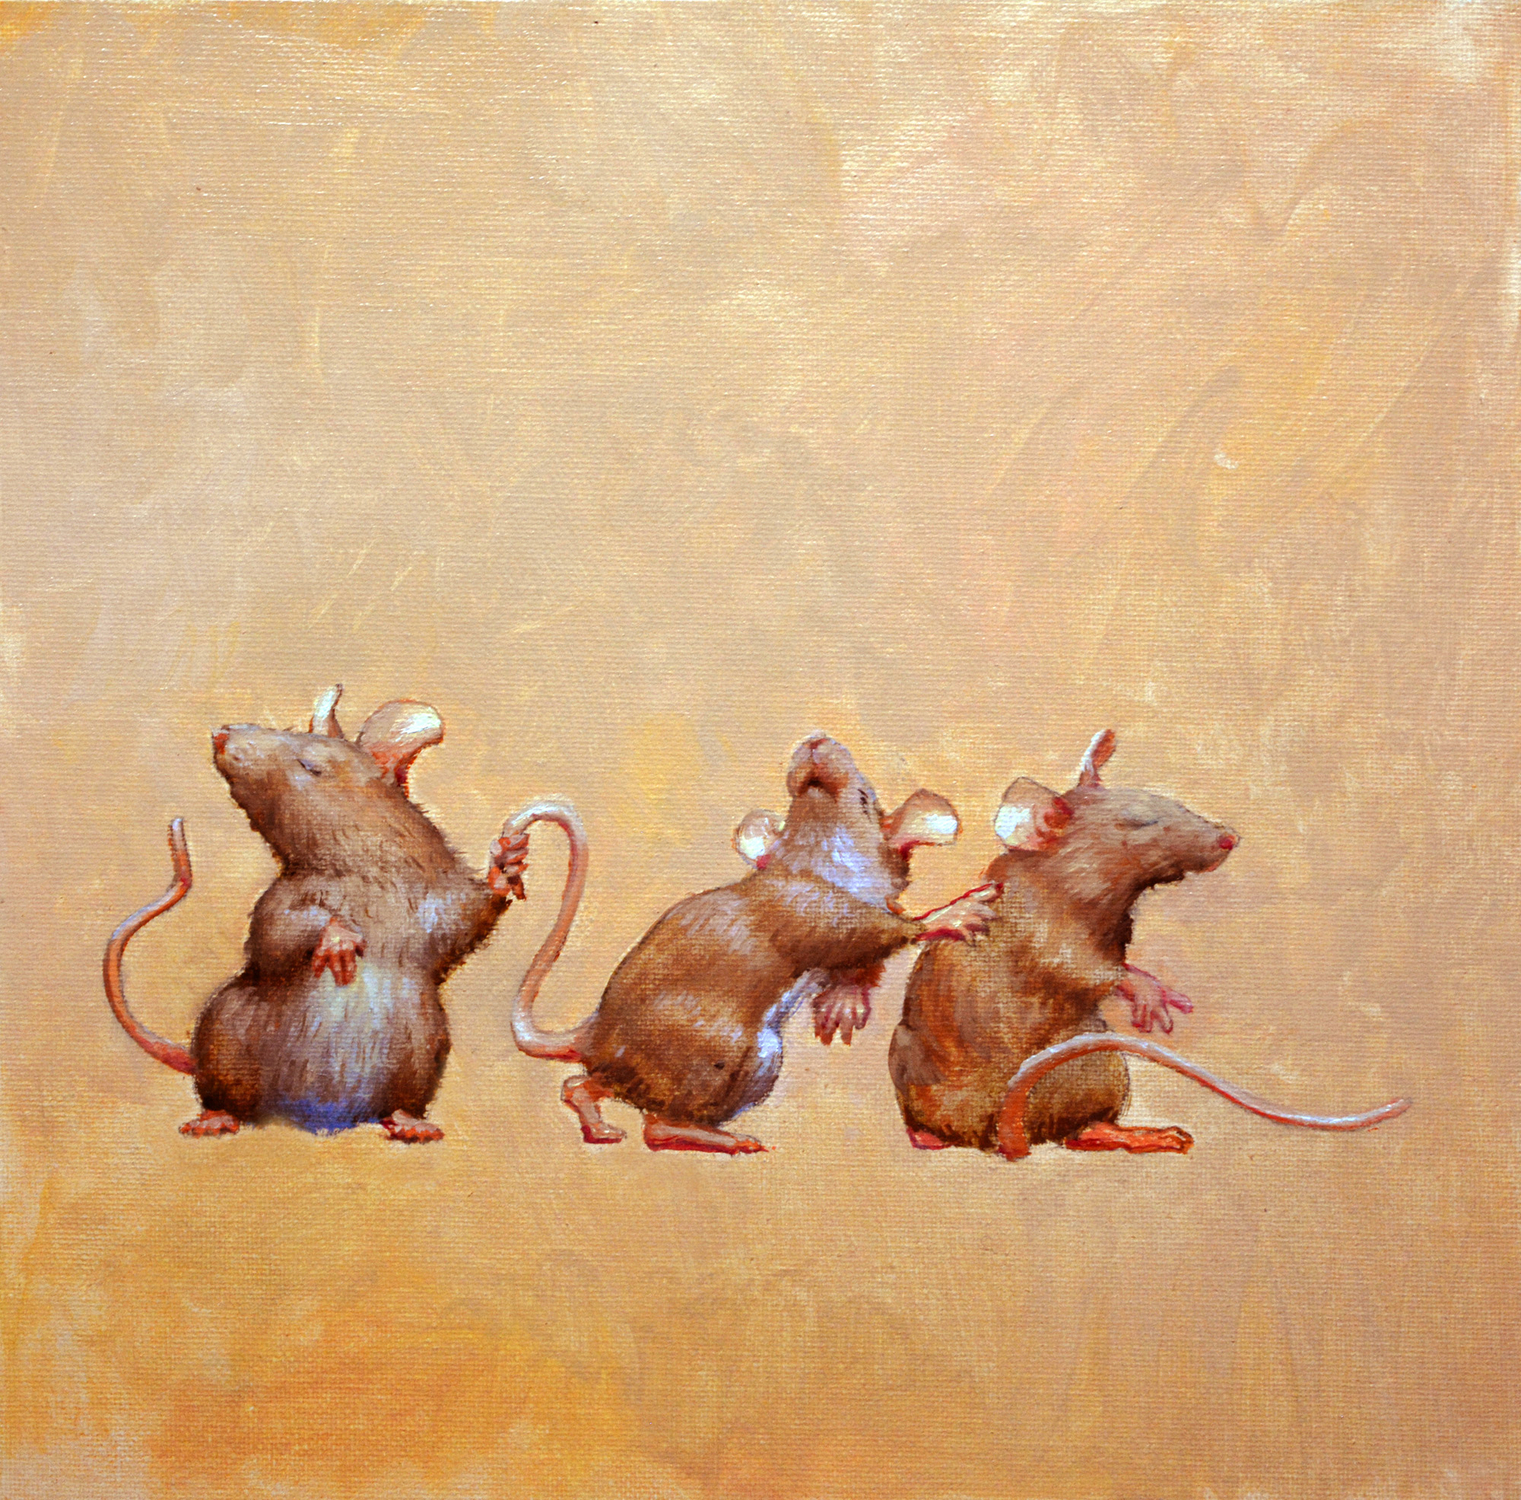 Blind Mice Artwork by Armand Cabrera